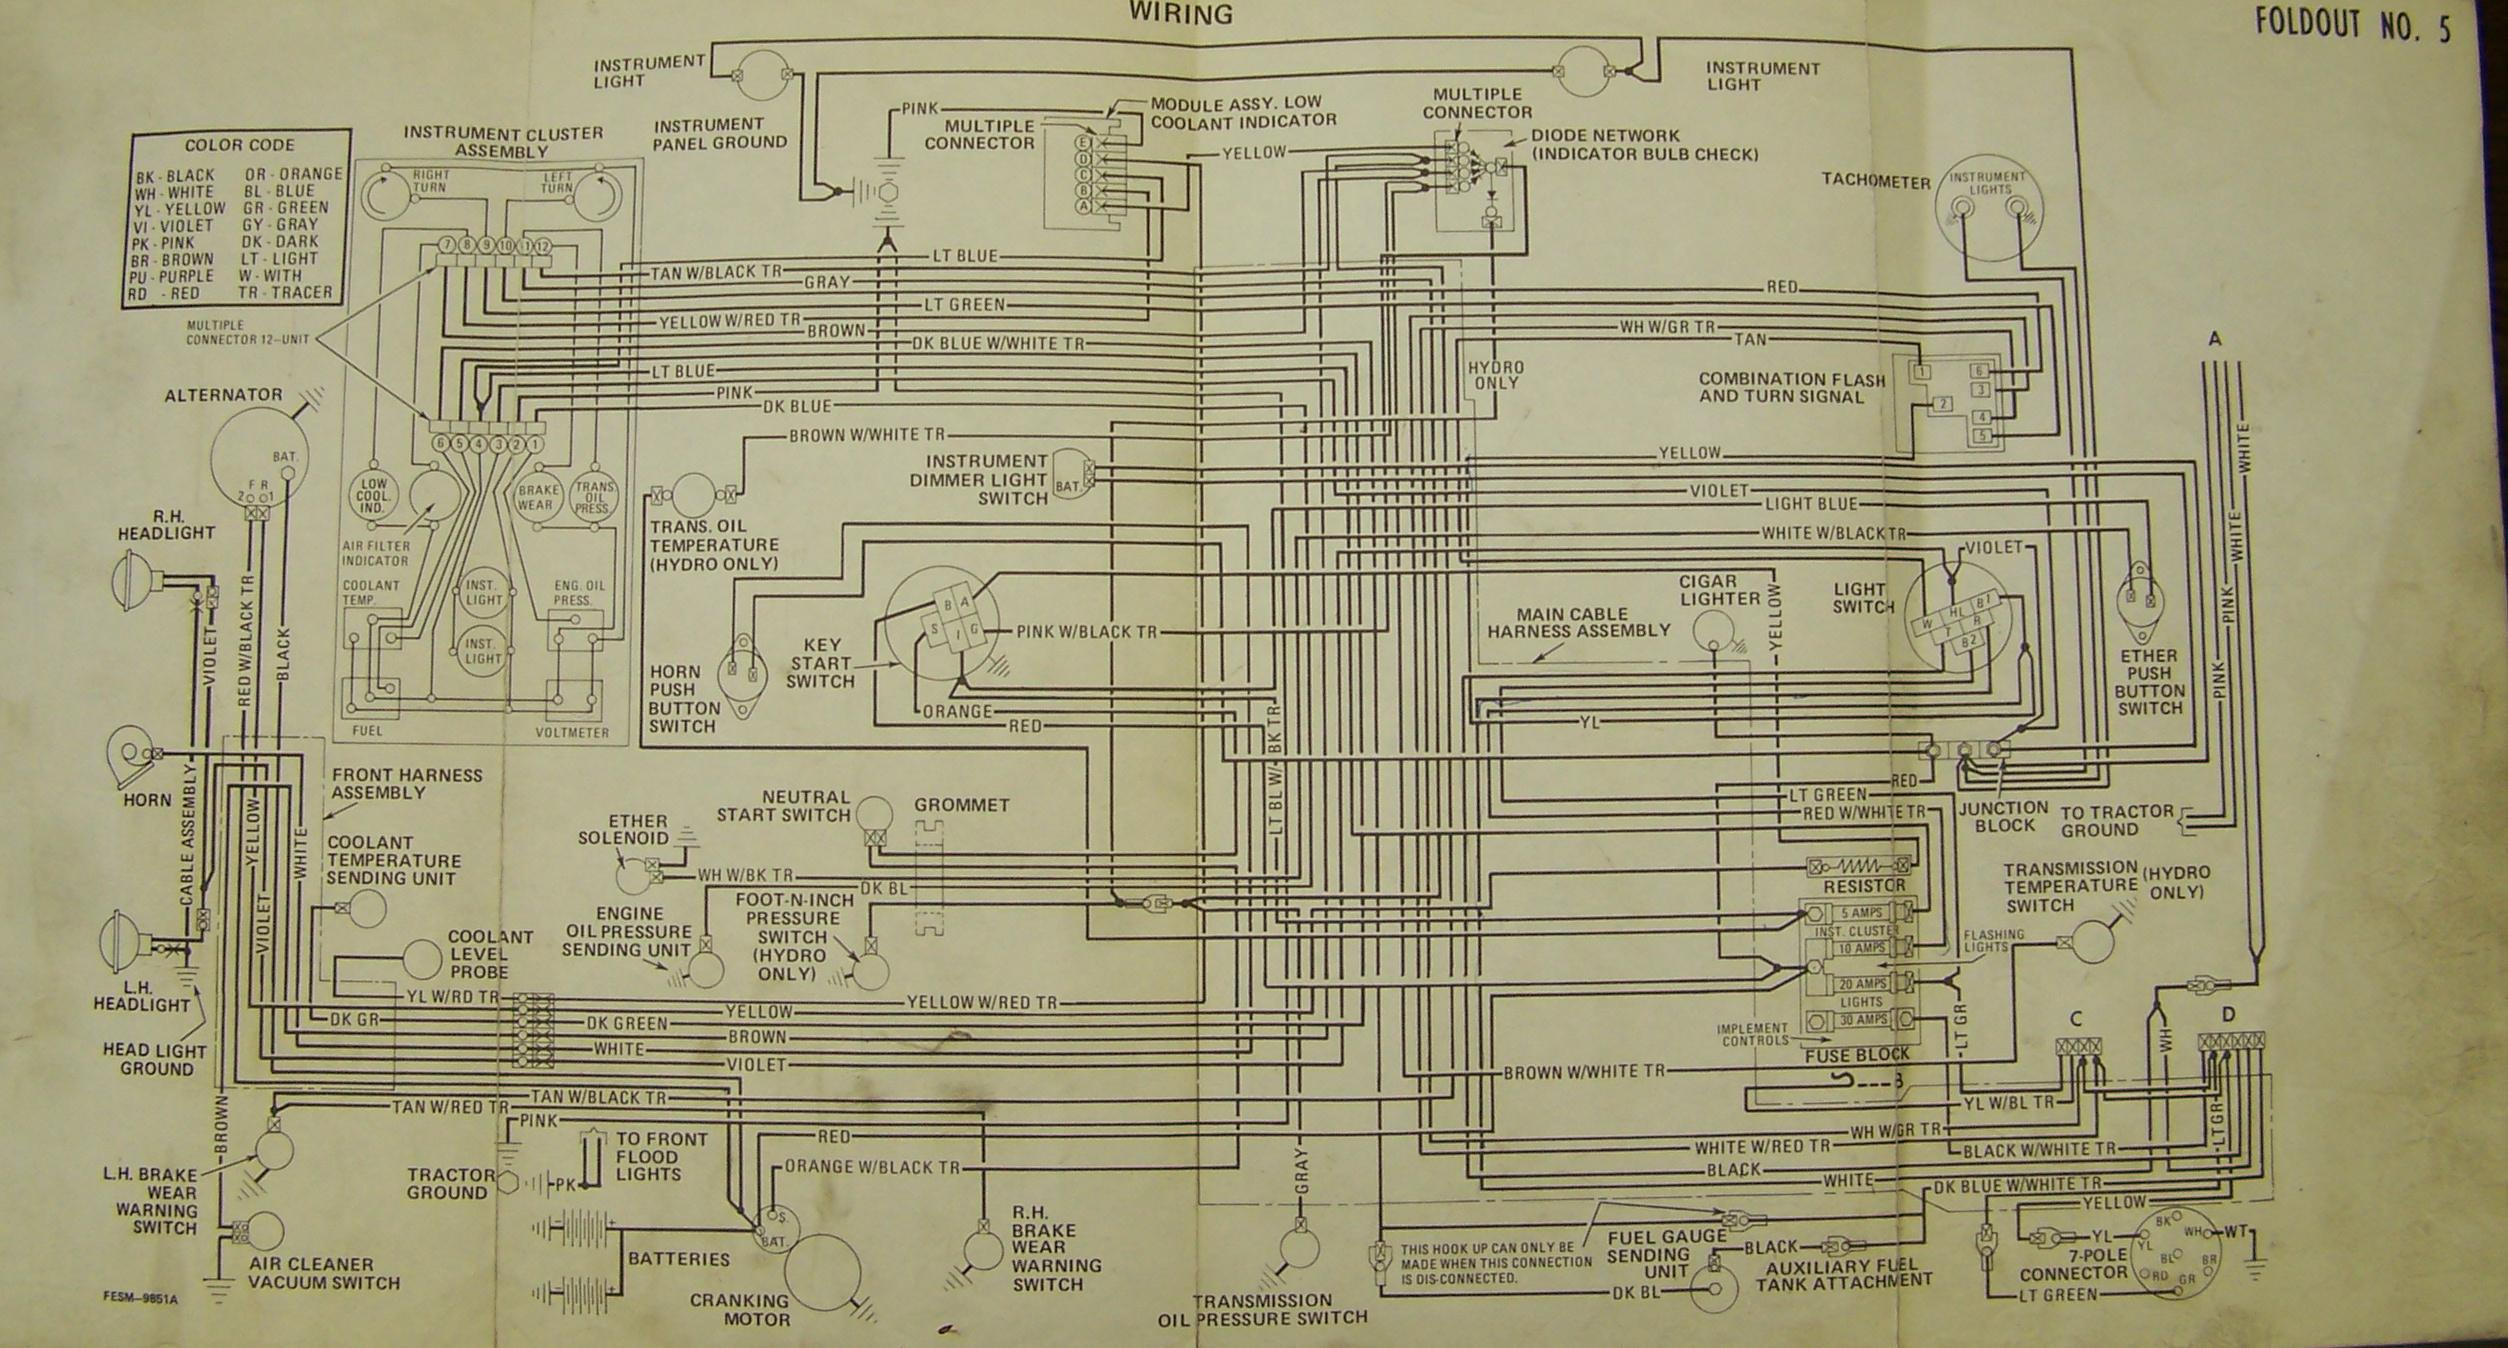 86series5 carter & gruenewald co inc ih farmall tractor electrical bobcat ct235 compact tractor wiring diagram at gsmx.co